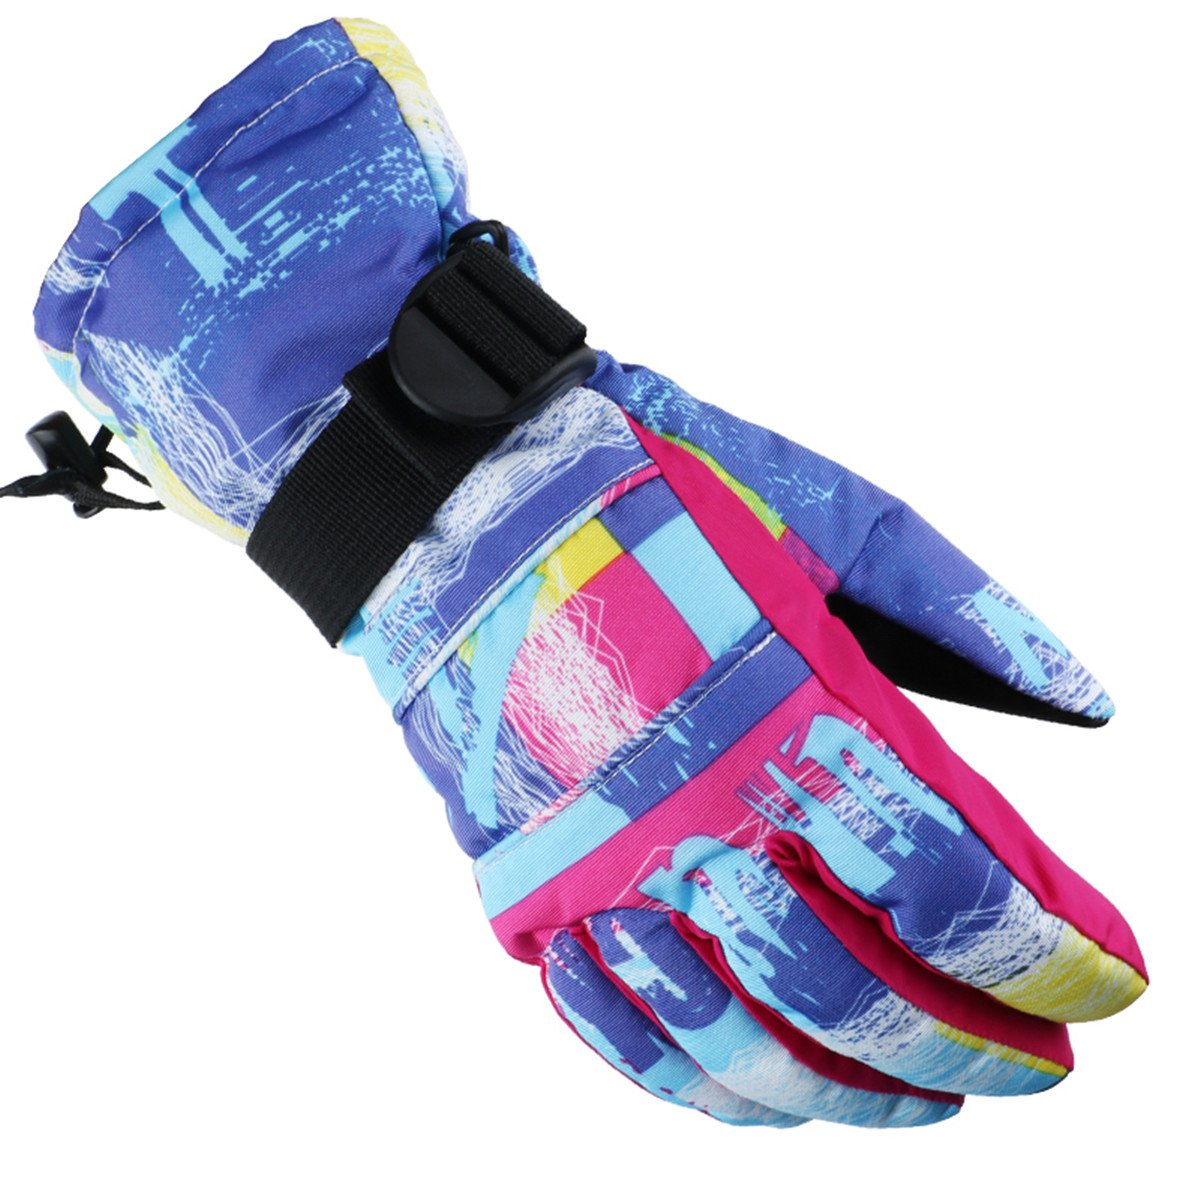 SF.Z Ski Gloves, Snowboard Cycling Snowmobile Biking Athletic Gloves, Waterproof Windproof Snow Proof Warm Breathable Fashion Comfortable Flexible Gloves for Women(Pink and Blue Graffiti/Small)